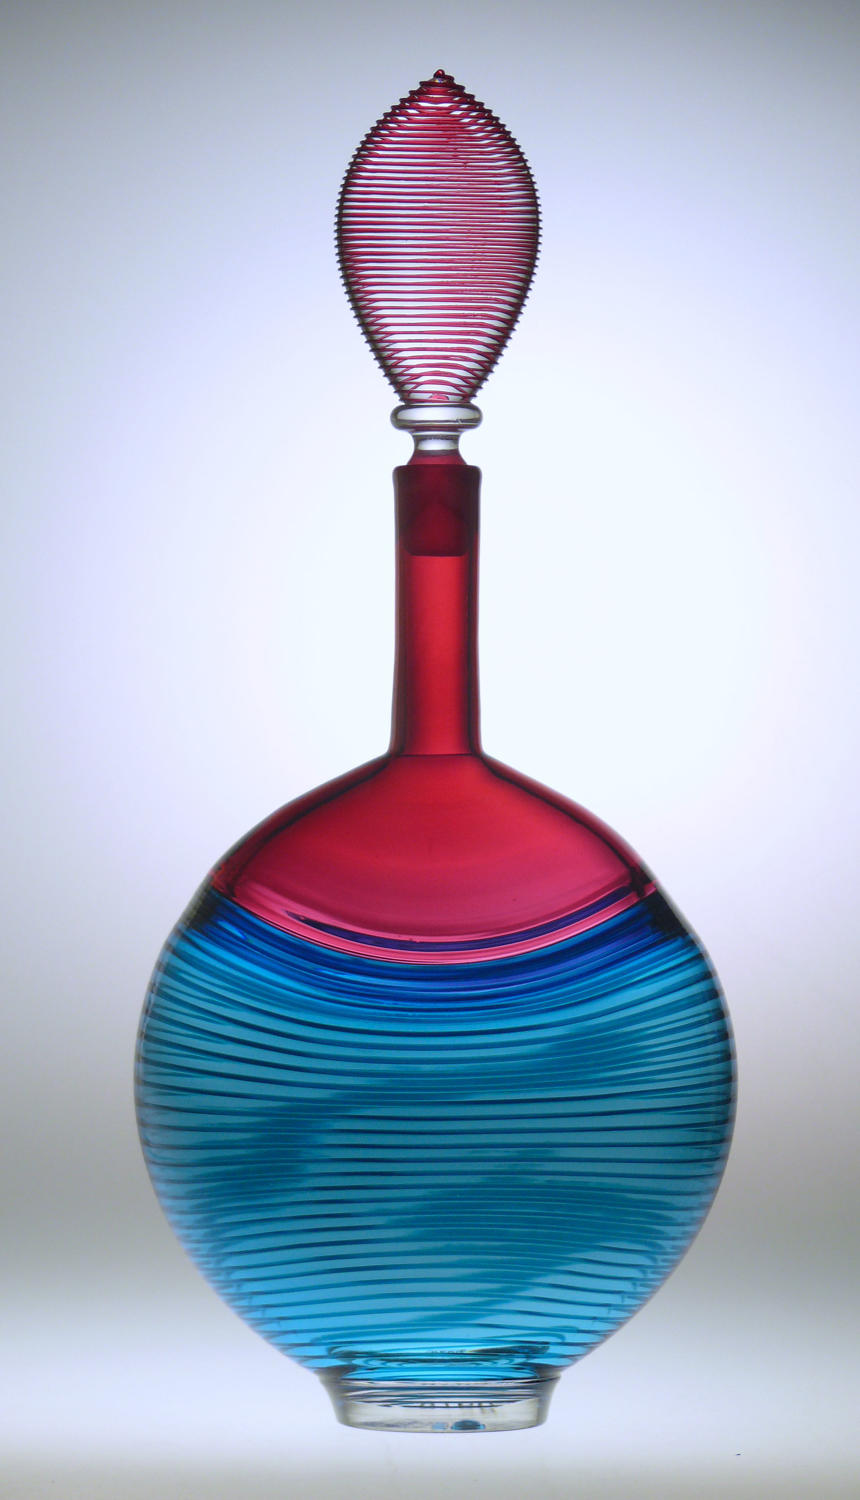 9978 A fine modern decanter by Bob Crooks.